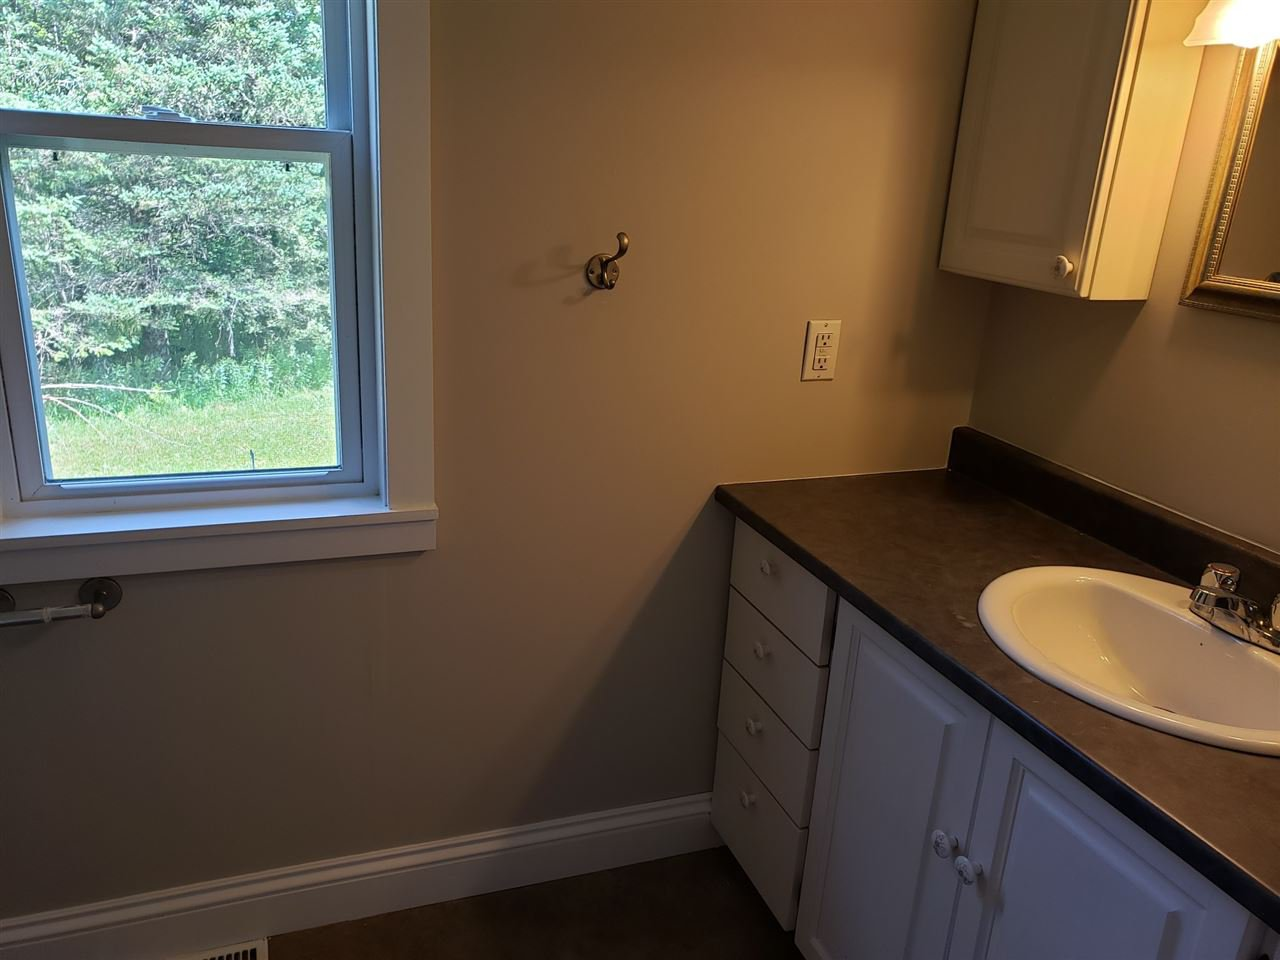 Photo 15: Photos: 2968 Aylesford Road in Lake Paul: 404-Kings County Residential for sale (Annapolis Valley)  : MLS®# 201915287